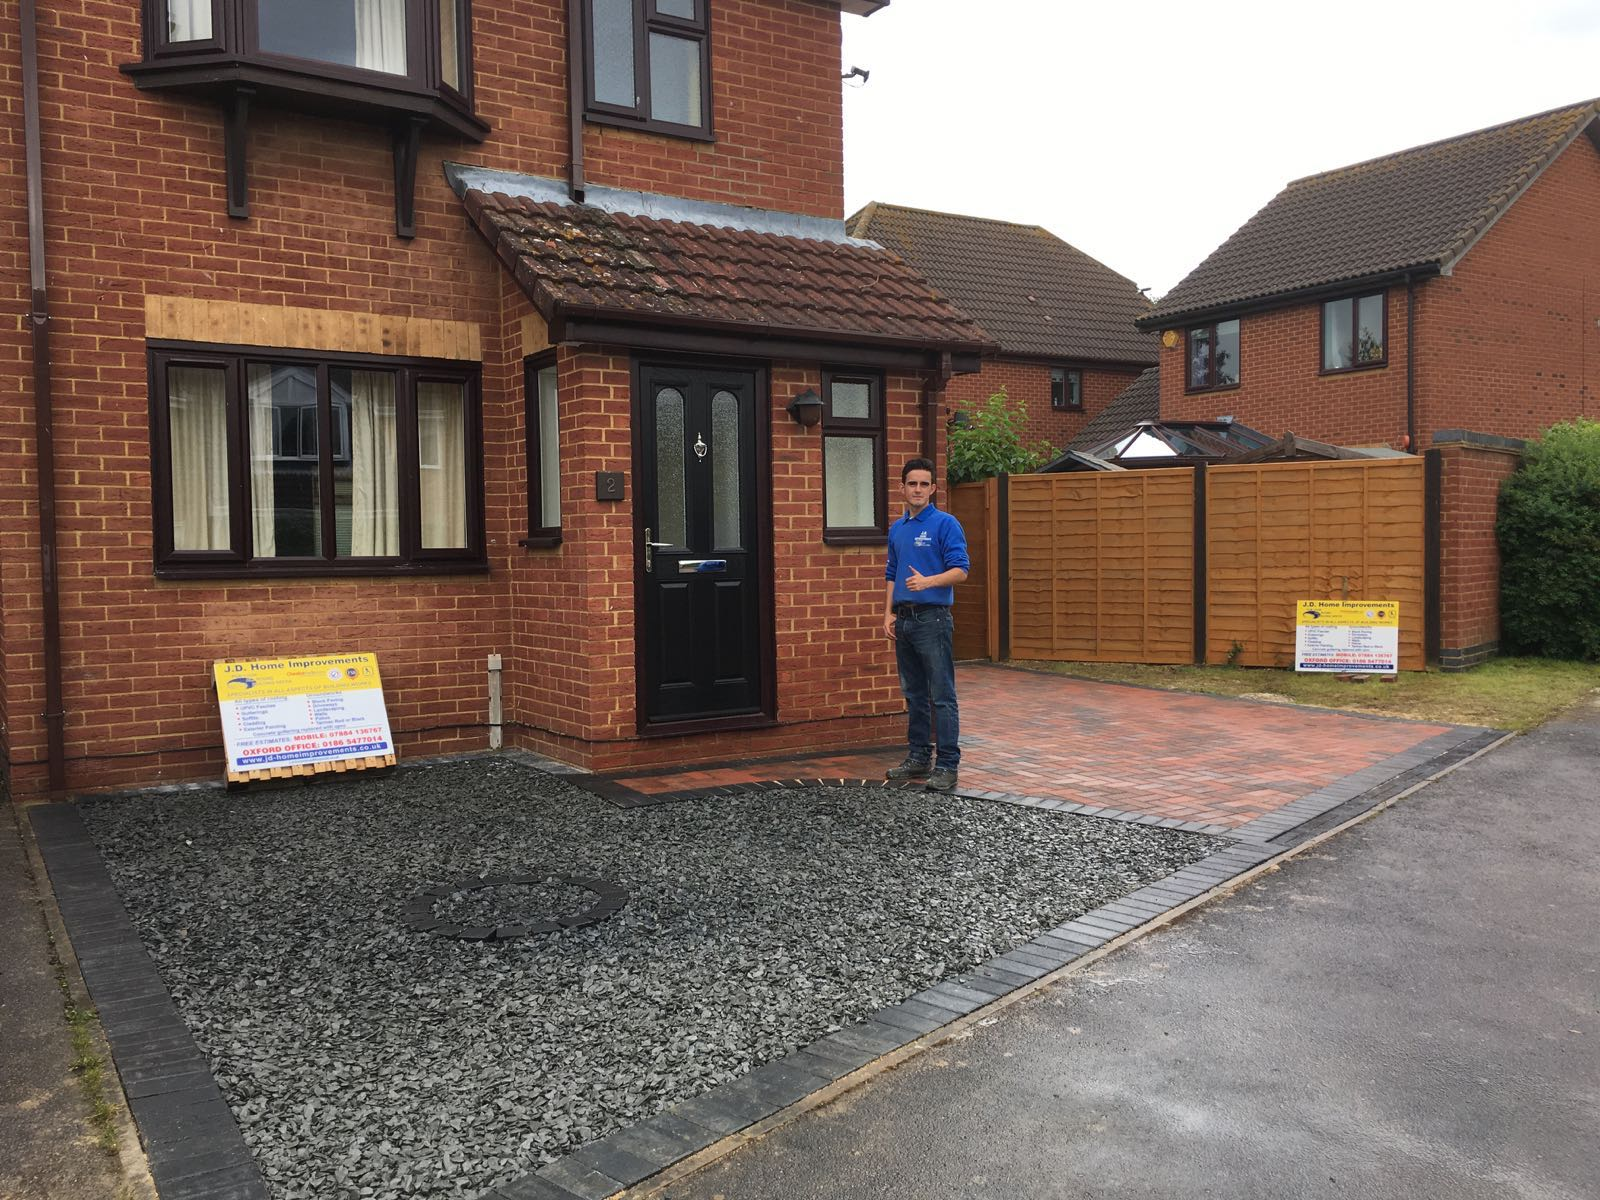 recent project for driveways in bristol - image shows a block paving driveway